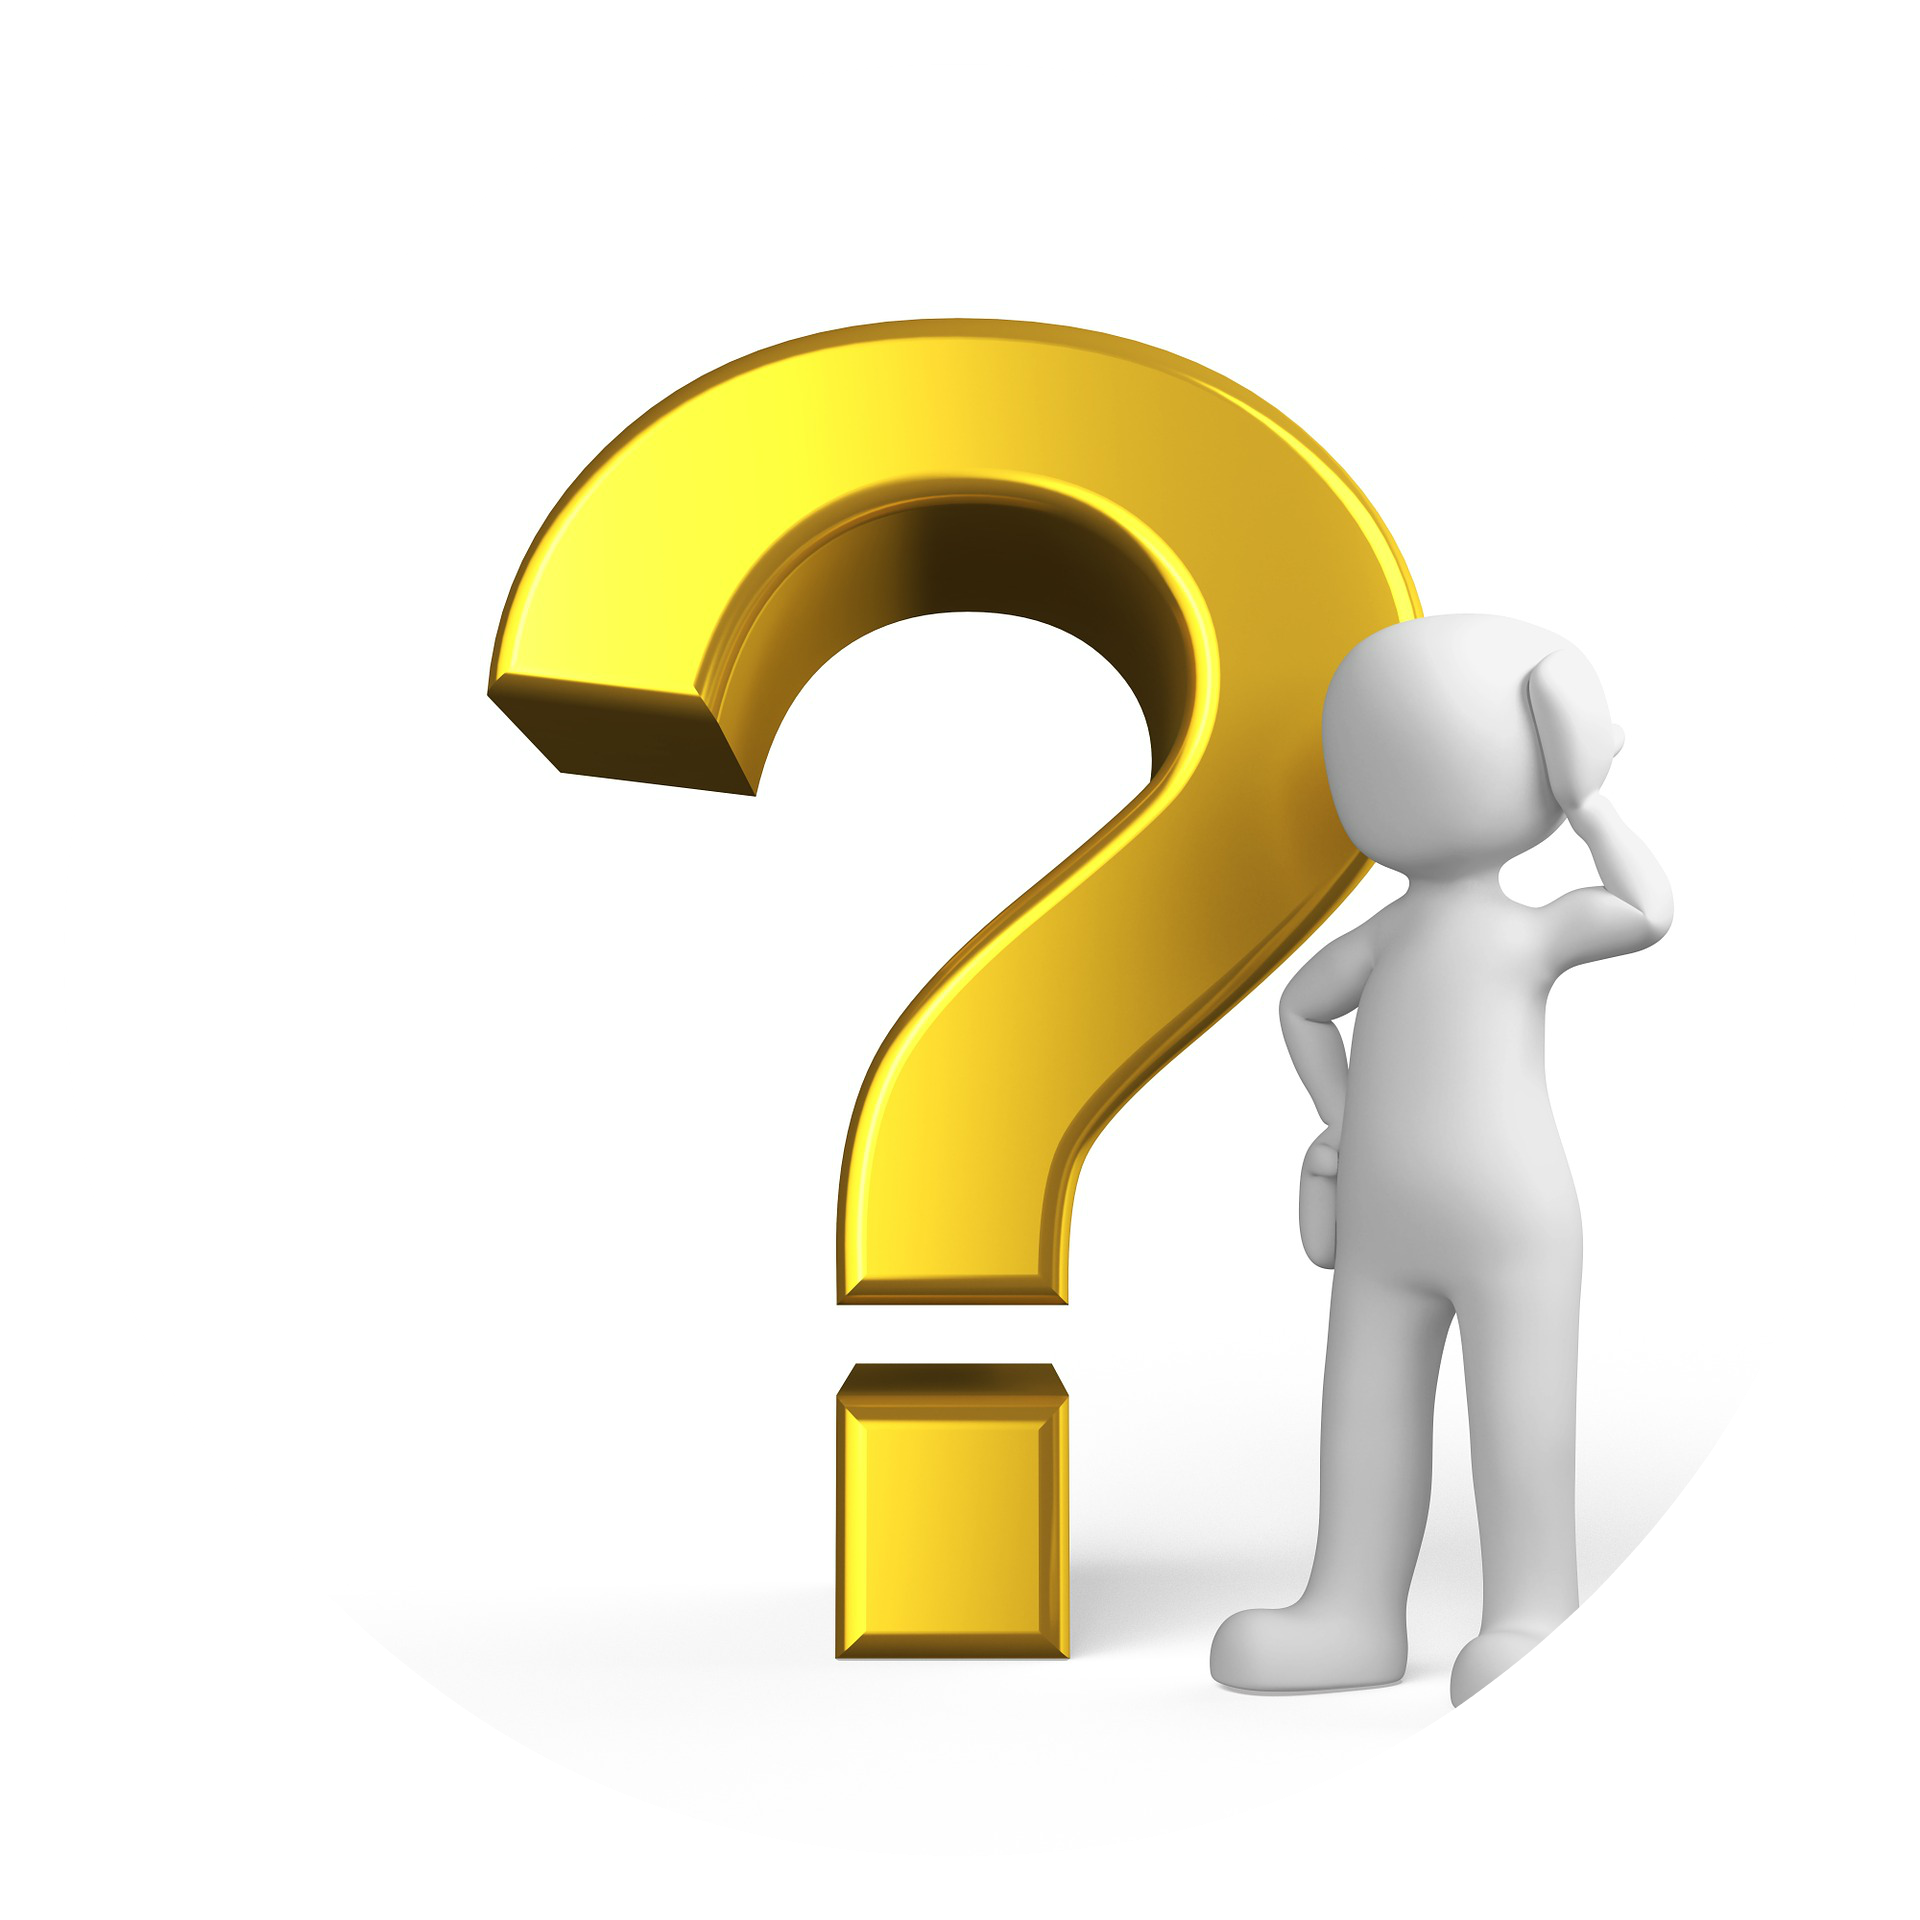 Is It Possible To Hunt Too Much The Answer Might Surprise You Read On To See What The Experts Say This Or That Questions Question Mark Question Mark Symbol